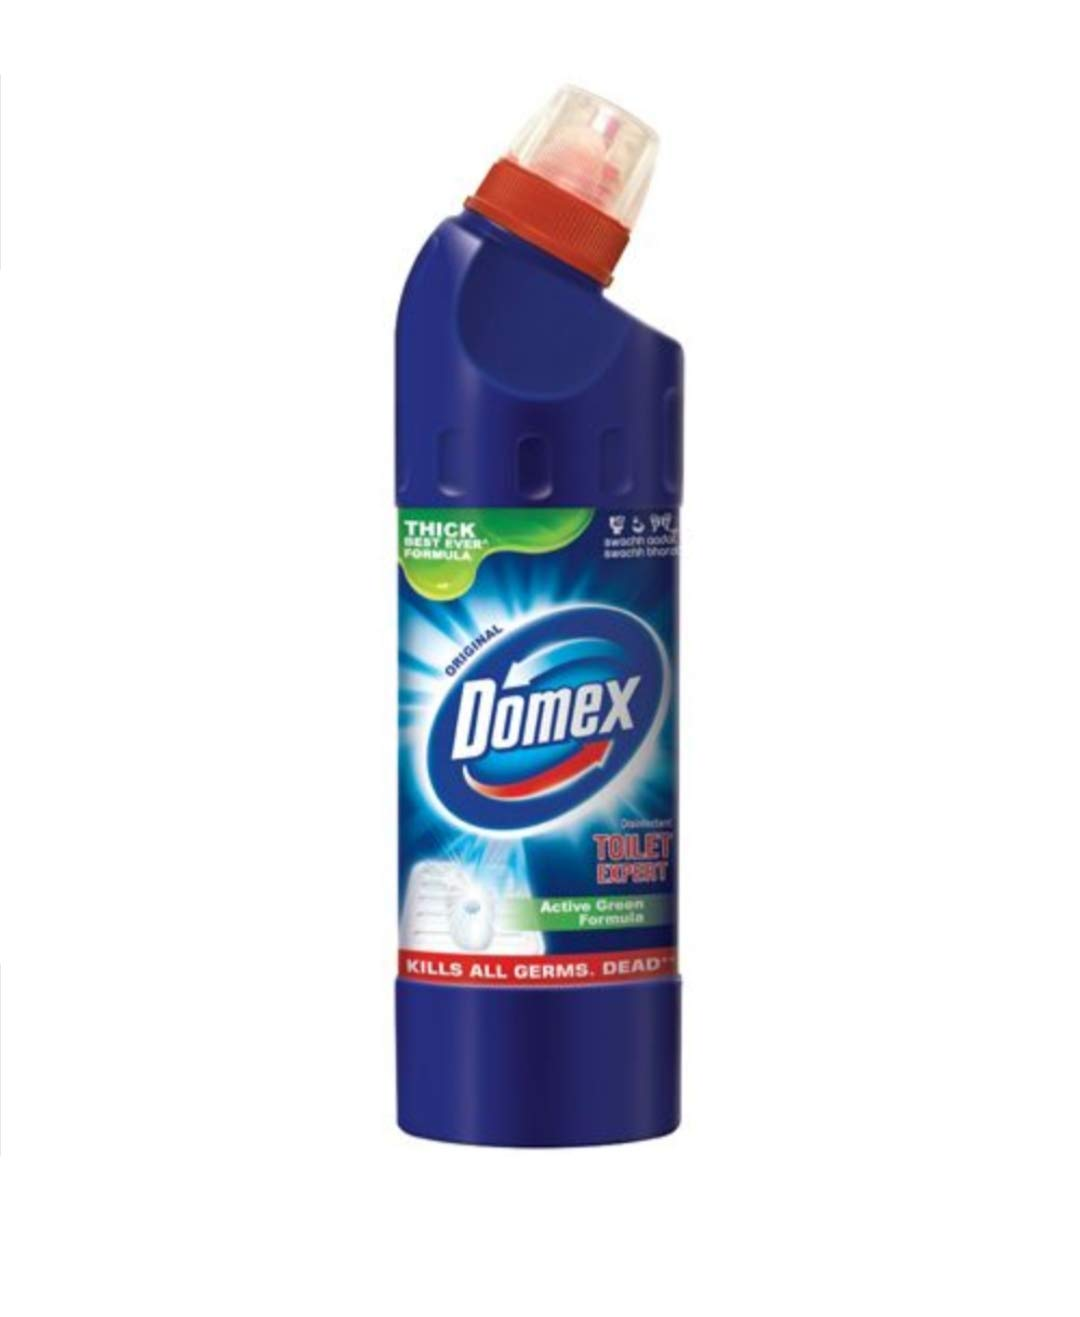 Domex Original Toilet Cleaner Expert